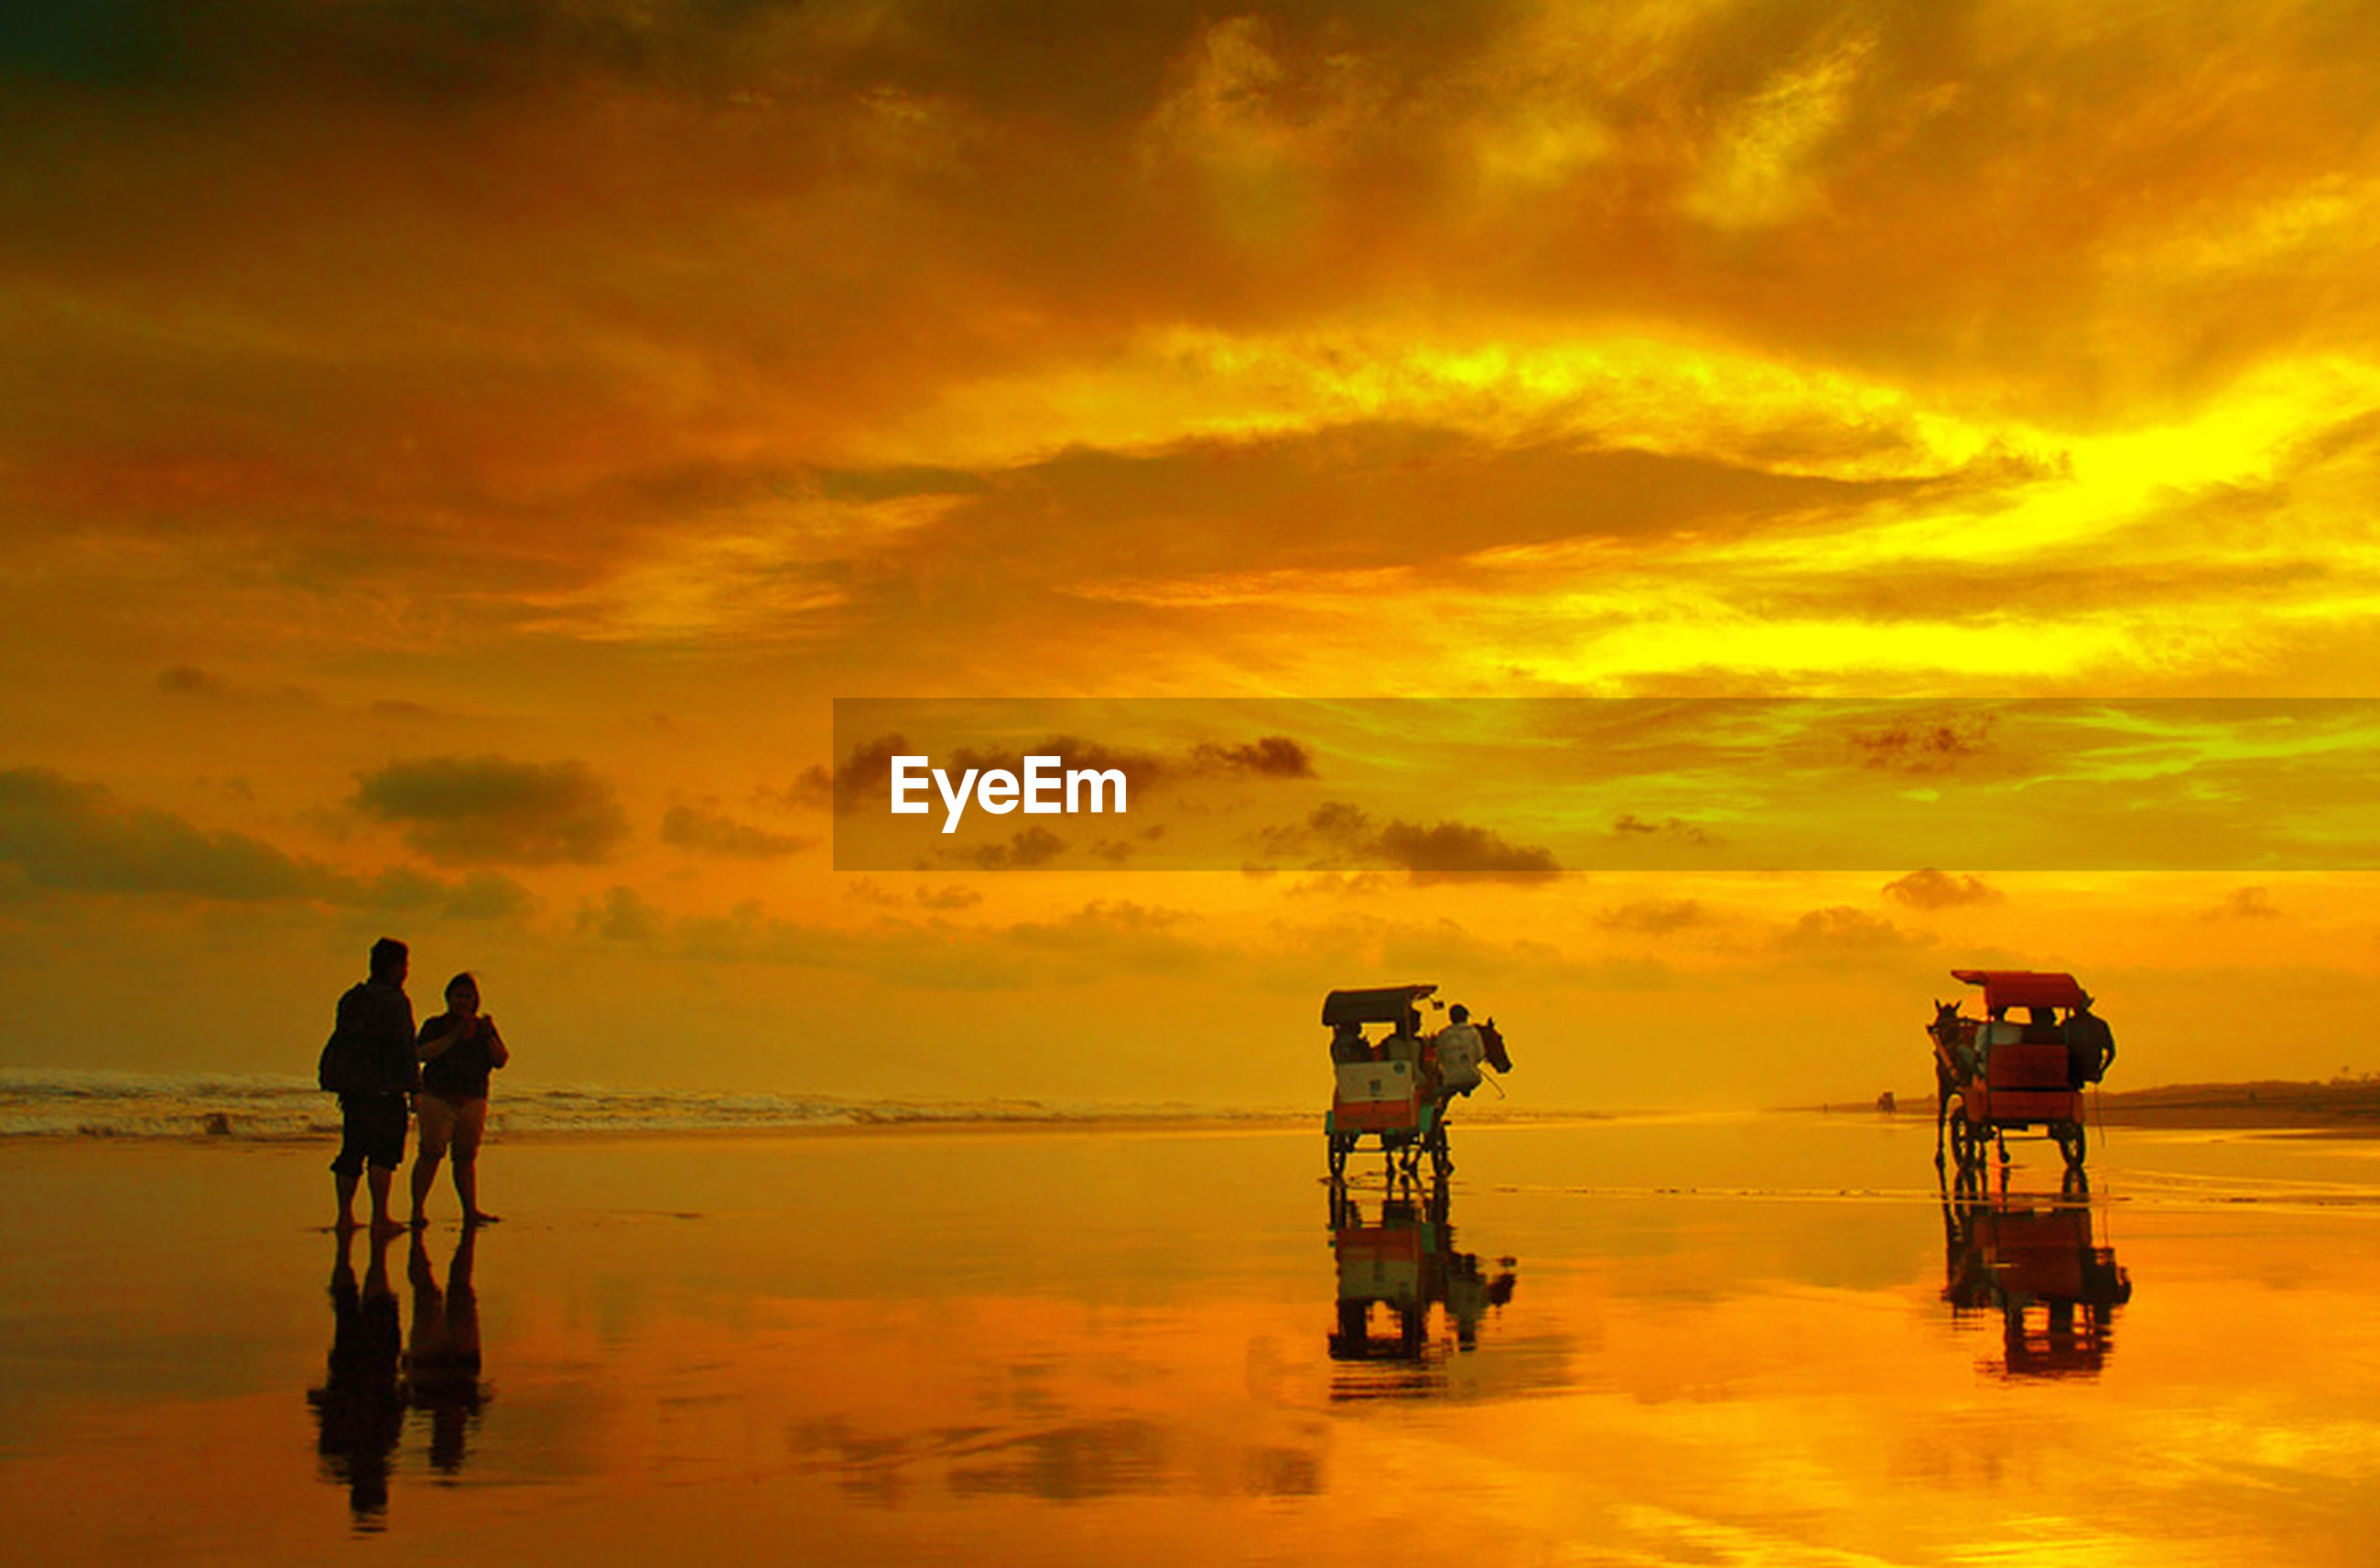 sunset, sky, orange color, water, sea, men, horizon over water, transportation, lifestyles, silhouette, cloud - sky, mode of transport, beauty in nature, scenics, leisure activity, tranquility, beach, nature, cloud